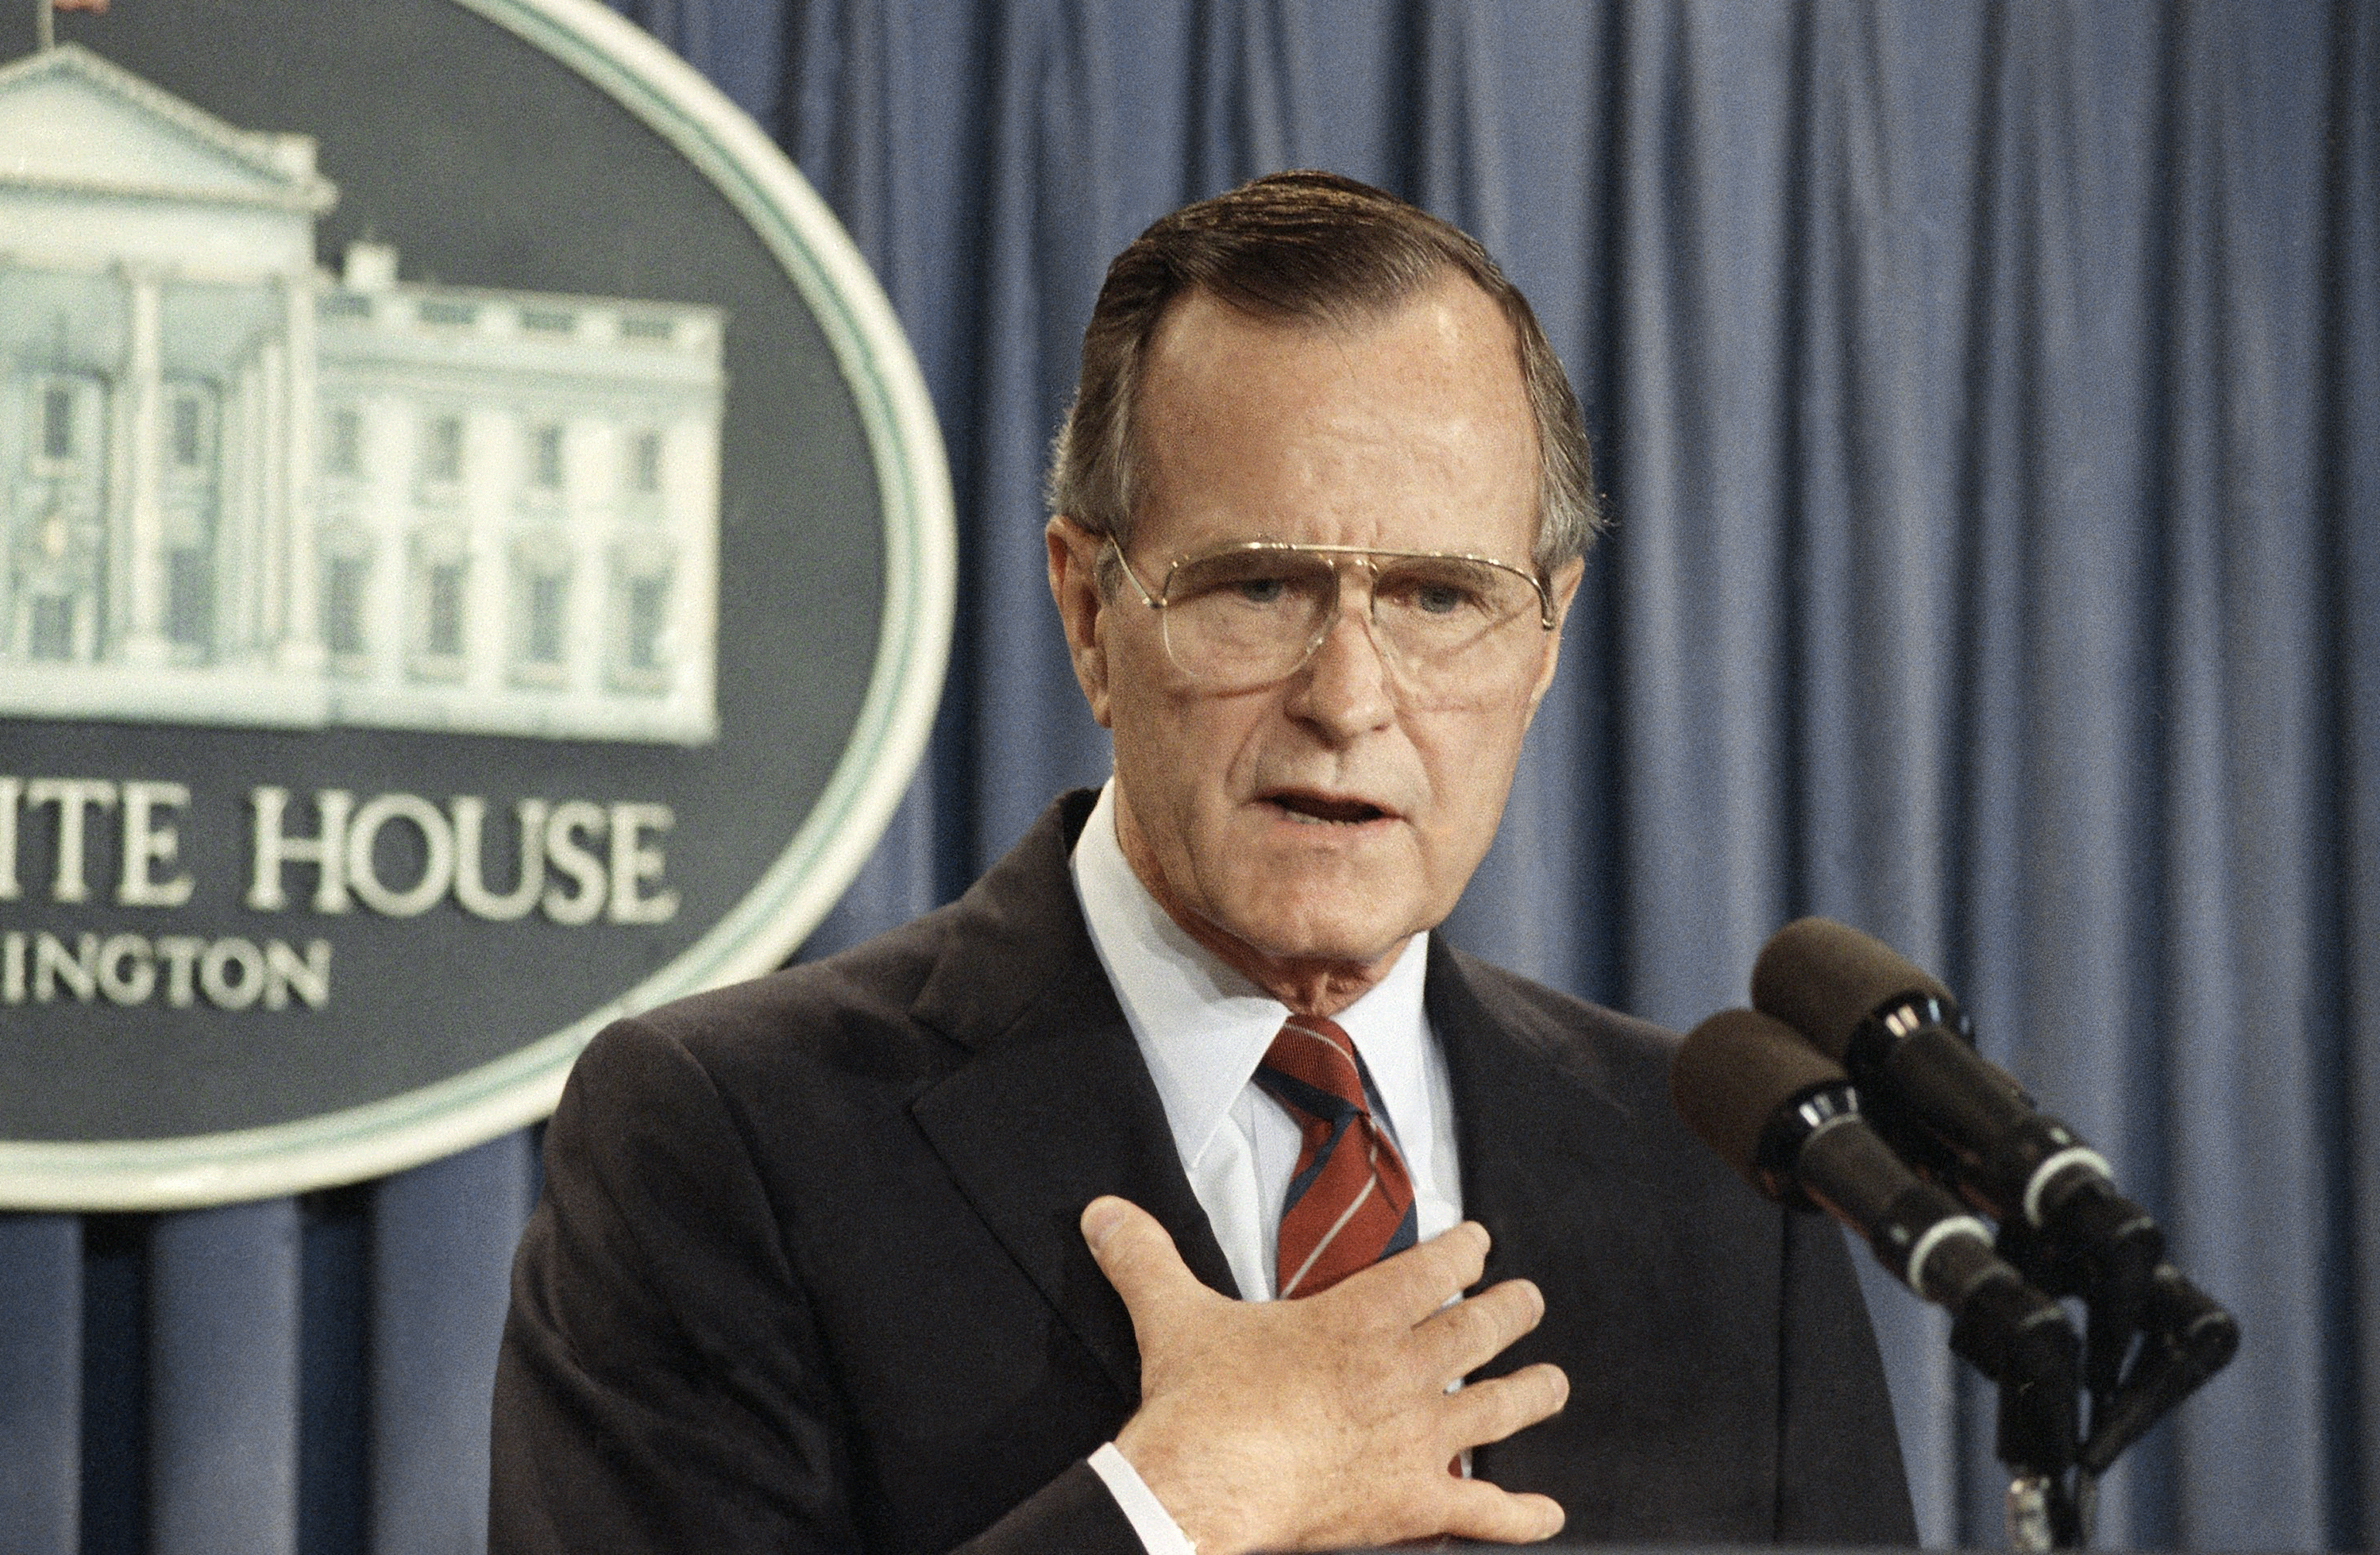 Pres. George H. W. Bush, appearing at a news conference at the White House, tells reporters that he will propose a constitutional amendment to forbid the desecration of the American flag, June 27, 1989, in Washington, D.C., after the Supreme Court ruled it was within 1st amendment rights to burn the flag. (AP Photo/Barry Thumma)